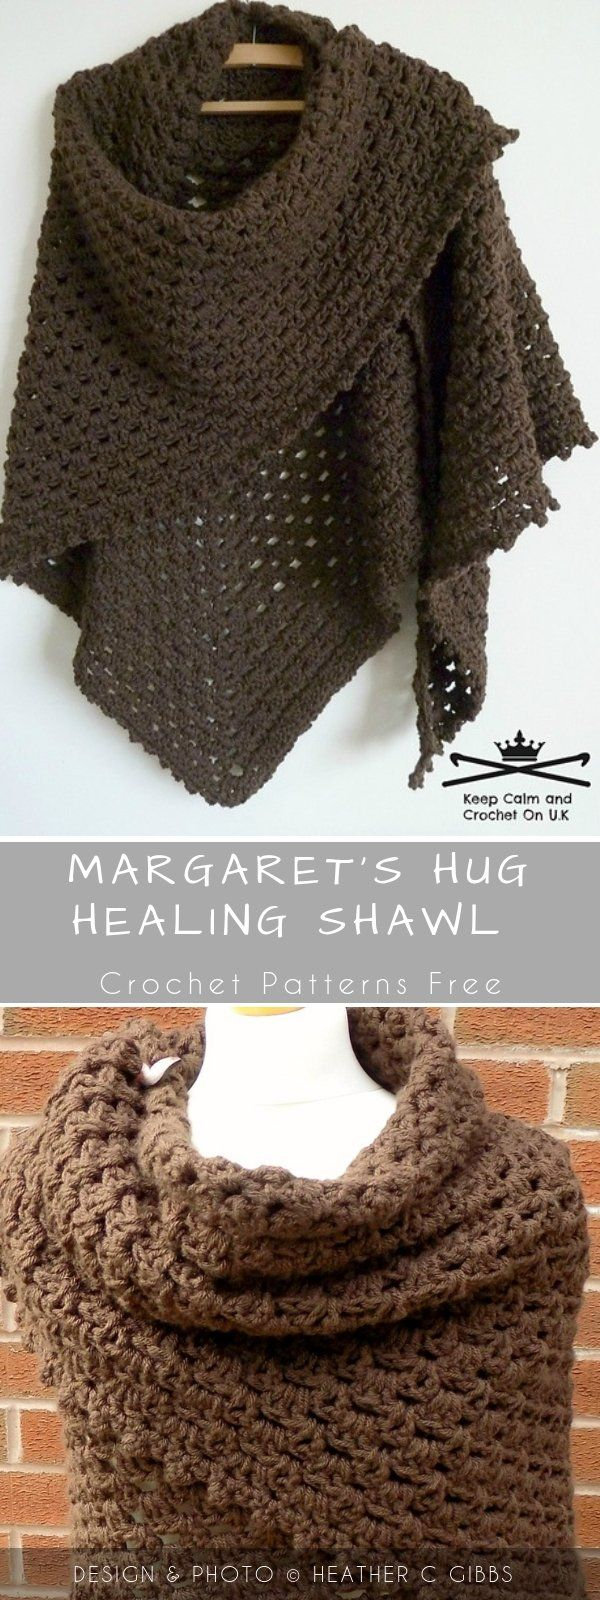 Margaret's Hug Healing Crochet Shawl with Free Pattern